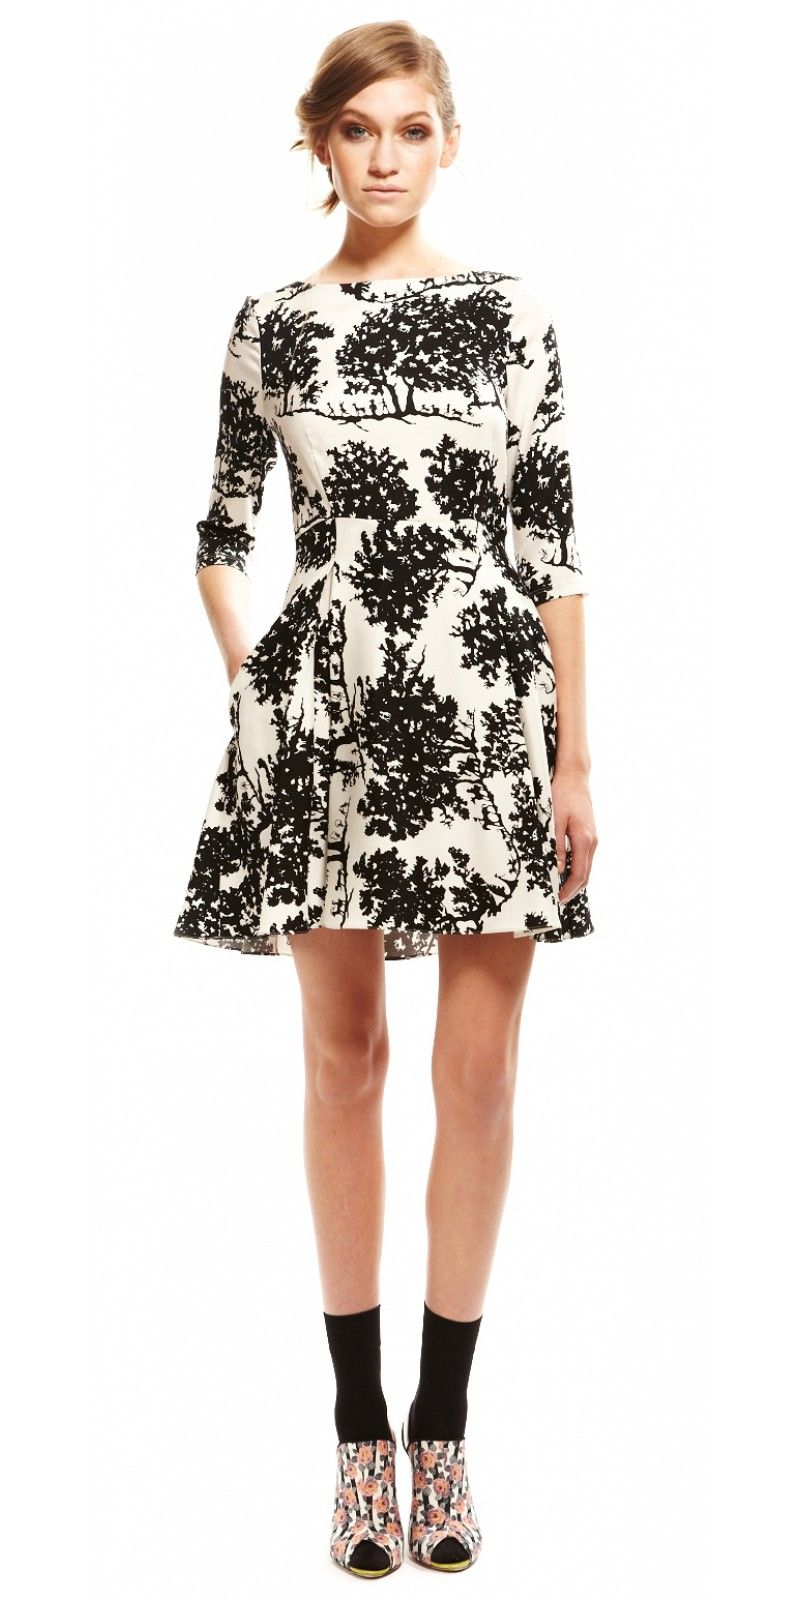 3/4 sleeve dress - SUNO